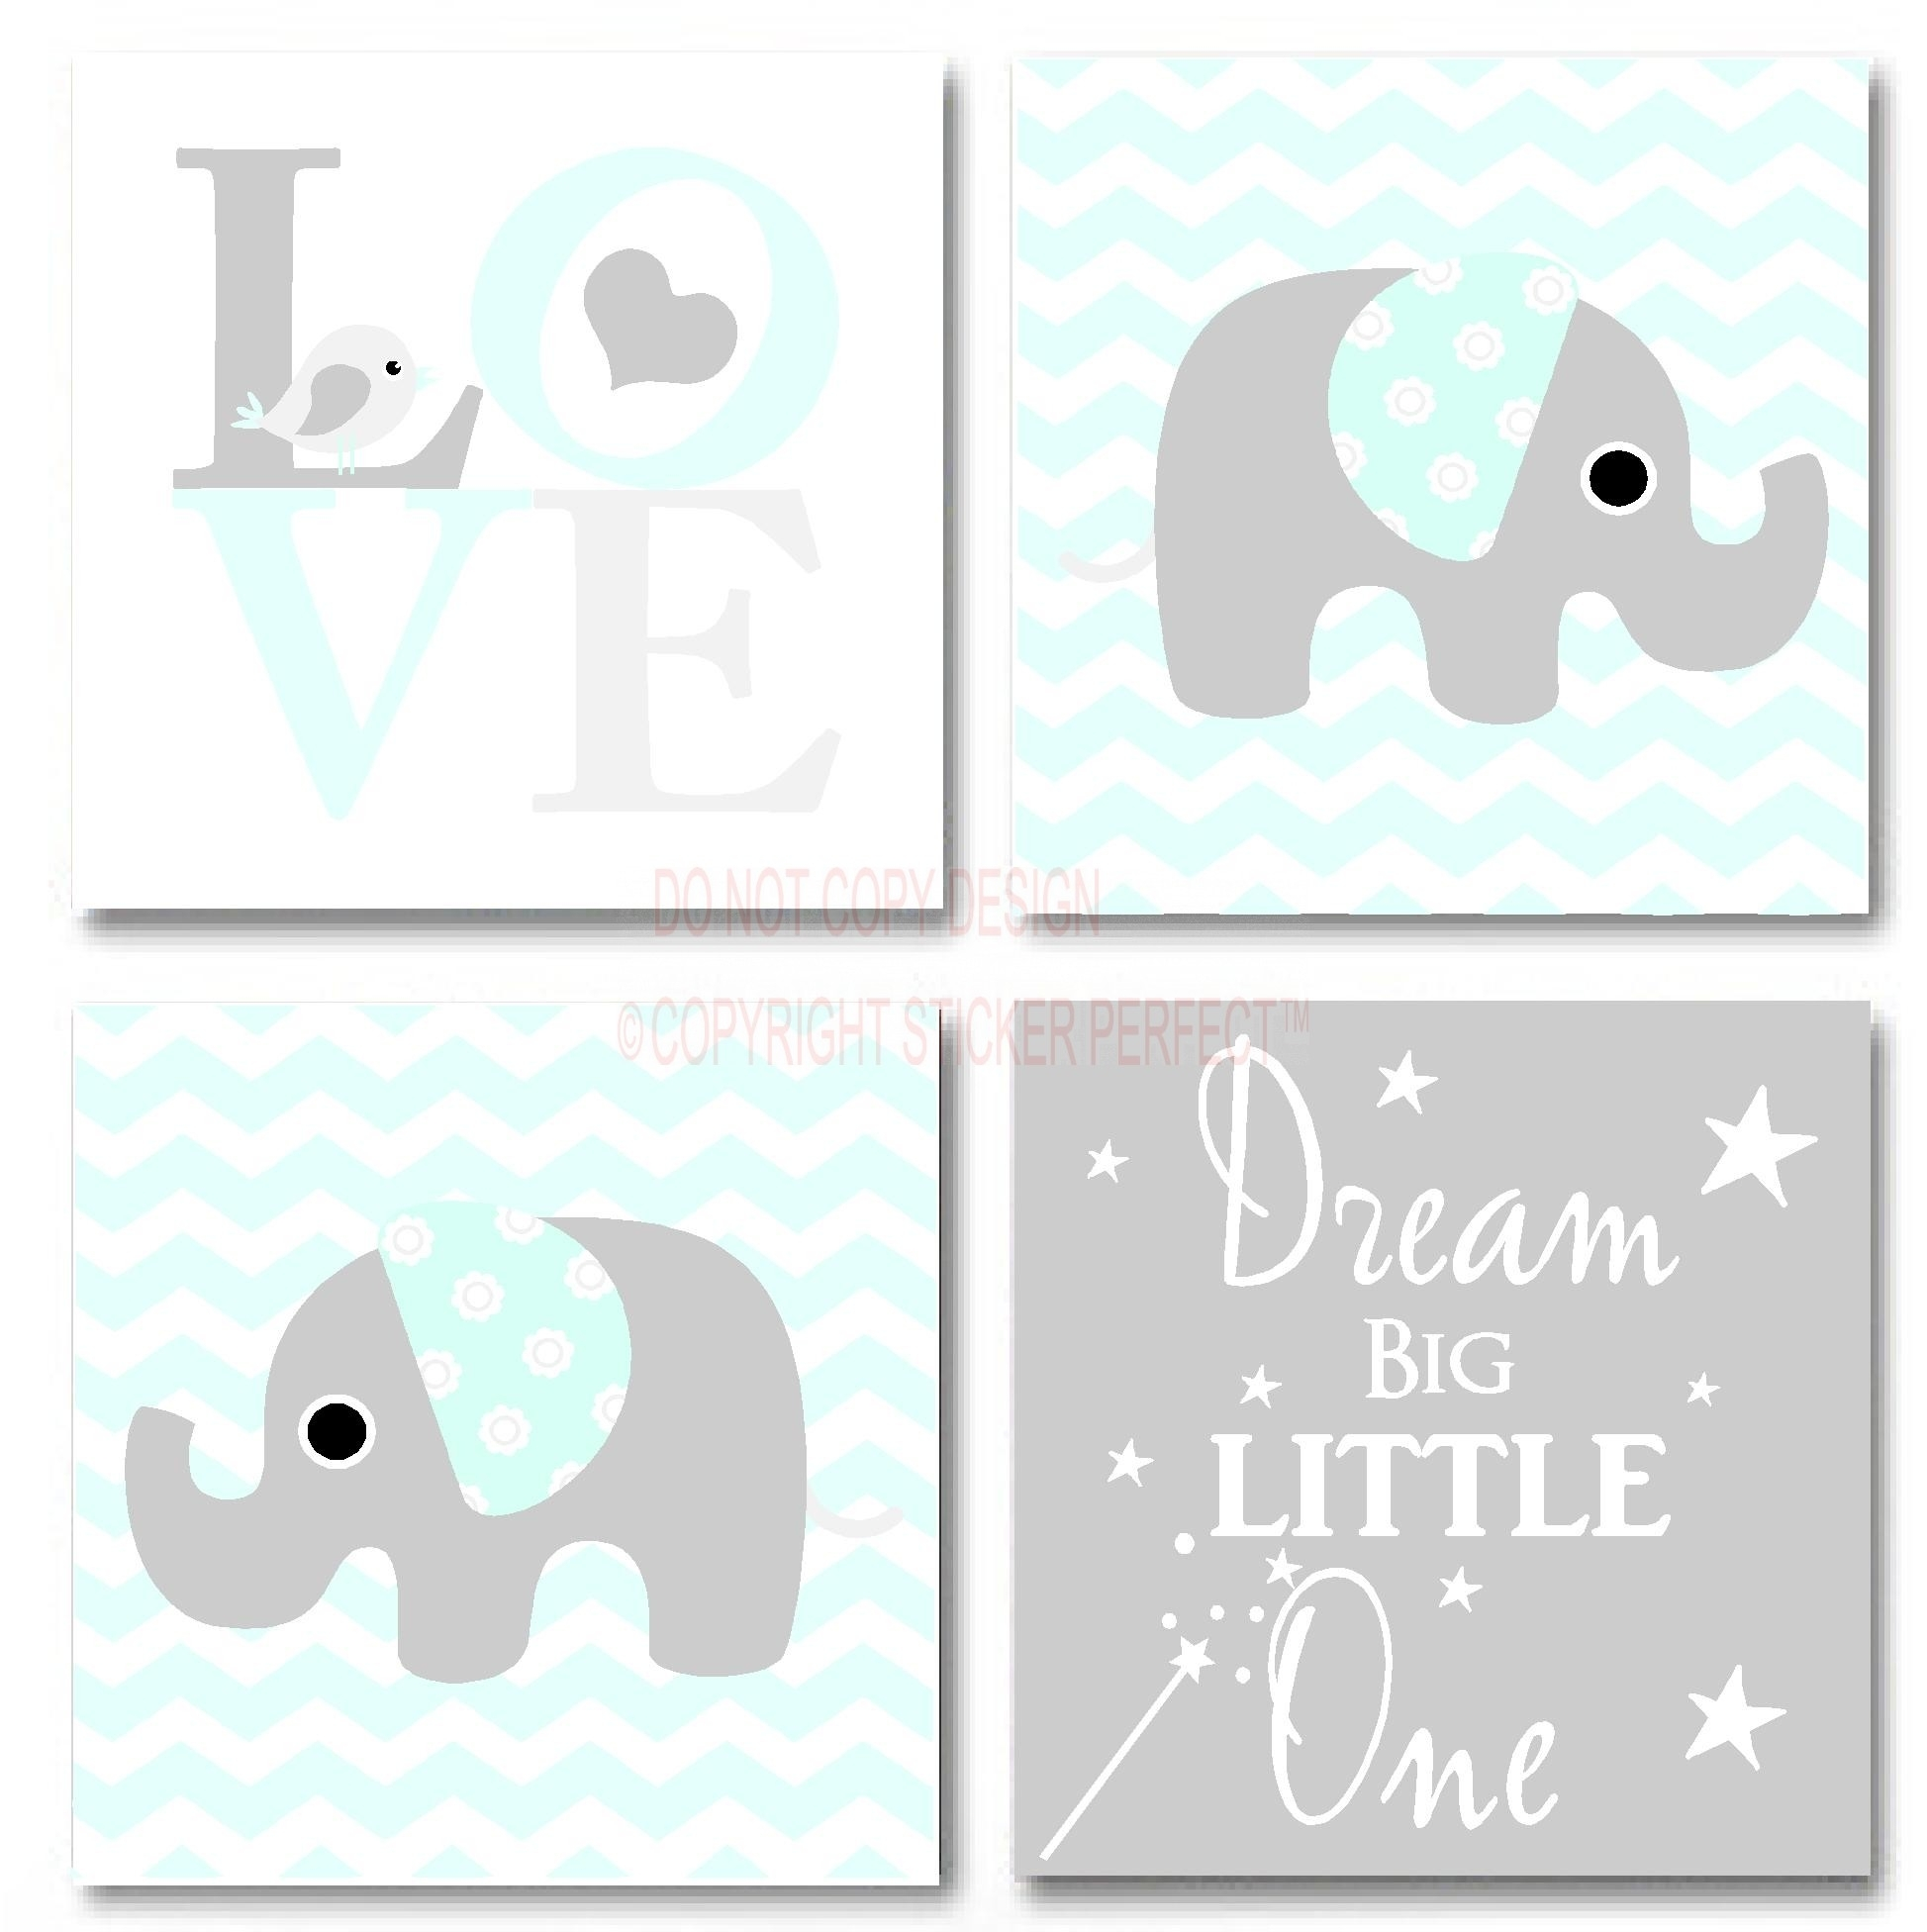 Framed Canvas Print Love 4 Piece Set Cute Elephant Bird With Latest Inspirational Wall Art Canvas (View 7 of 15)